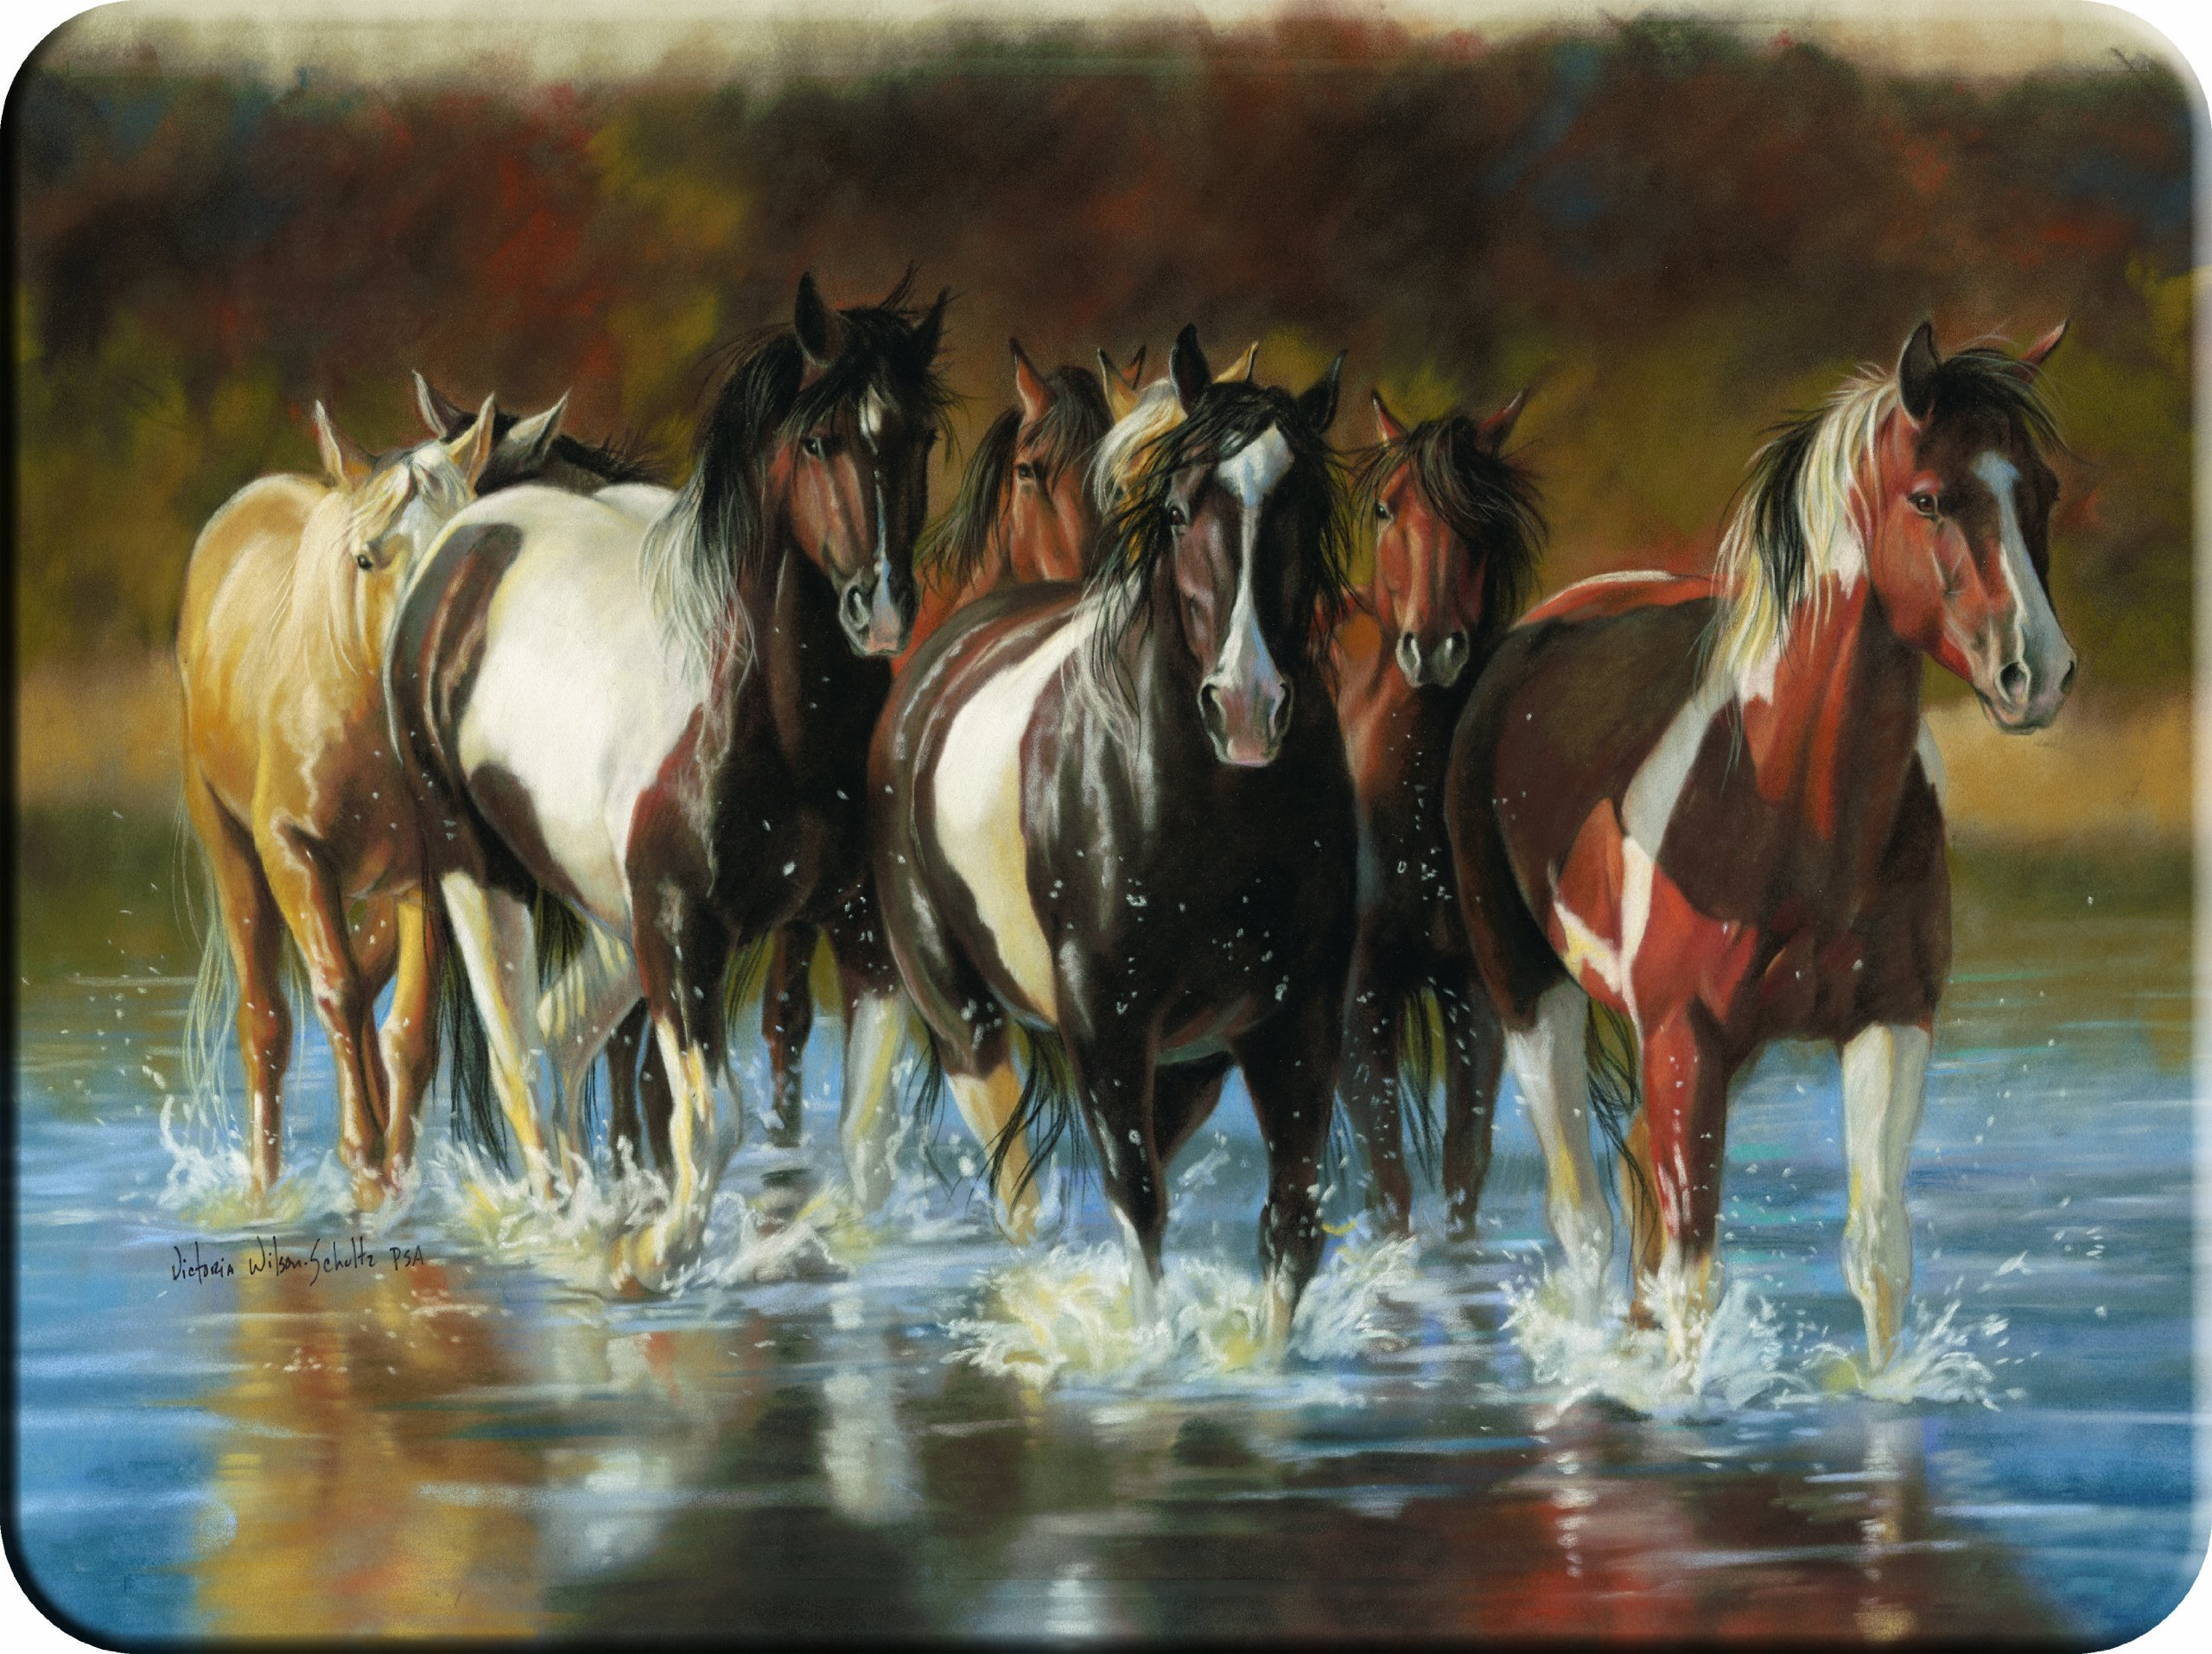 River's Edge Tempered Glass Cutting Board with Image of Horses Trotting through a Shallow River (Rush Hour Horses, 16-Inchx12-Inchx.3-Inch)